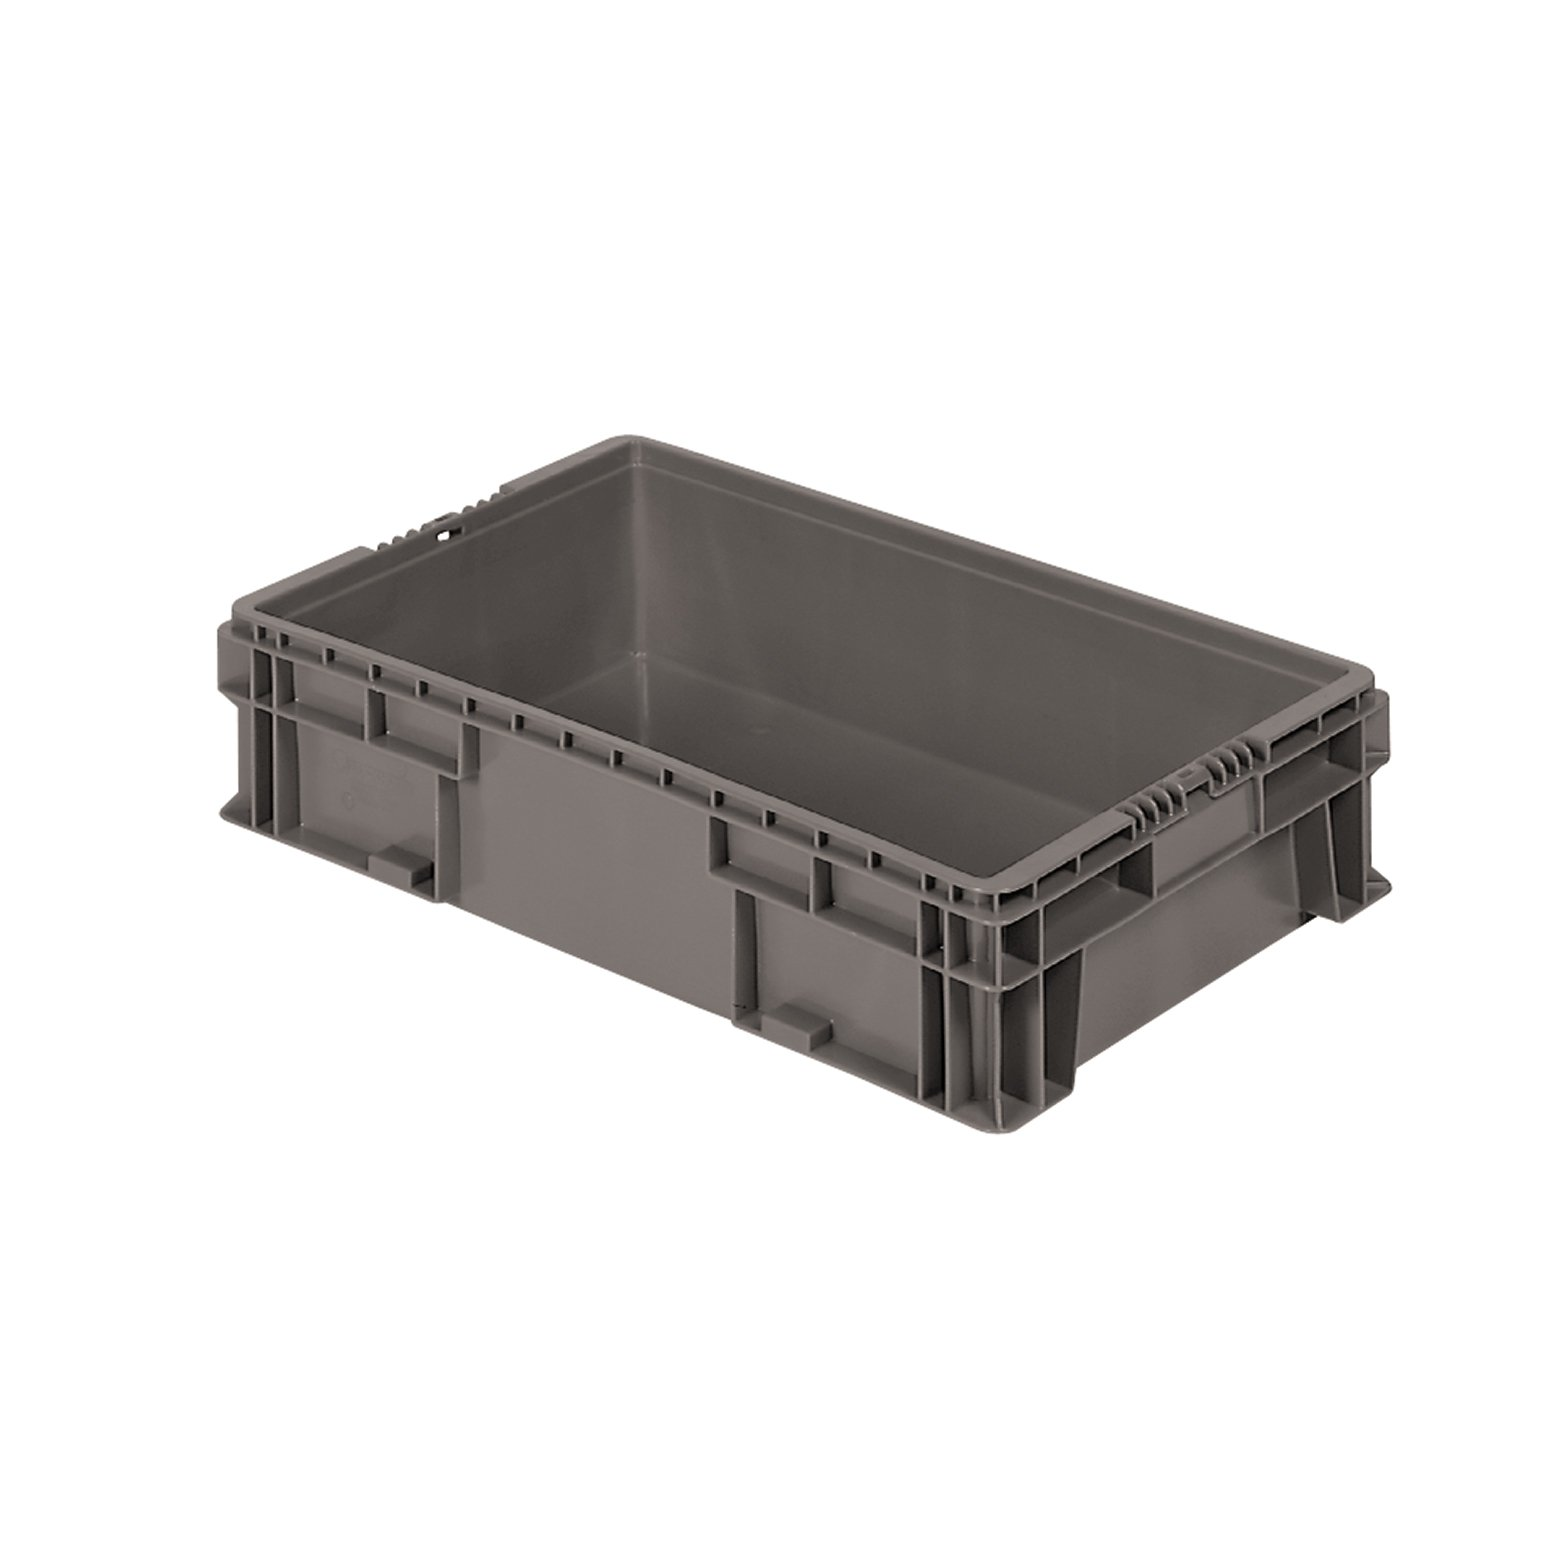 Buckhorn SW2415060206000 Plastic Straight Wall Storage Container Tote, 24-Inch by 15-Inch by 5.5-Inch, Dark Grey